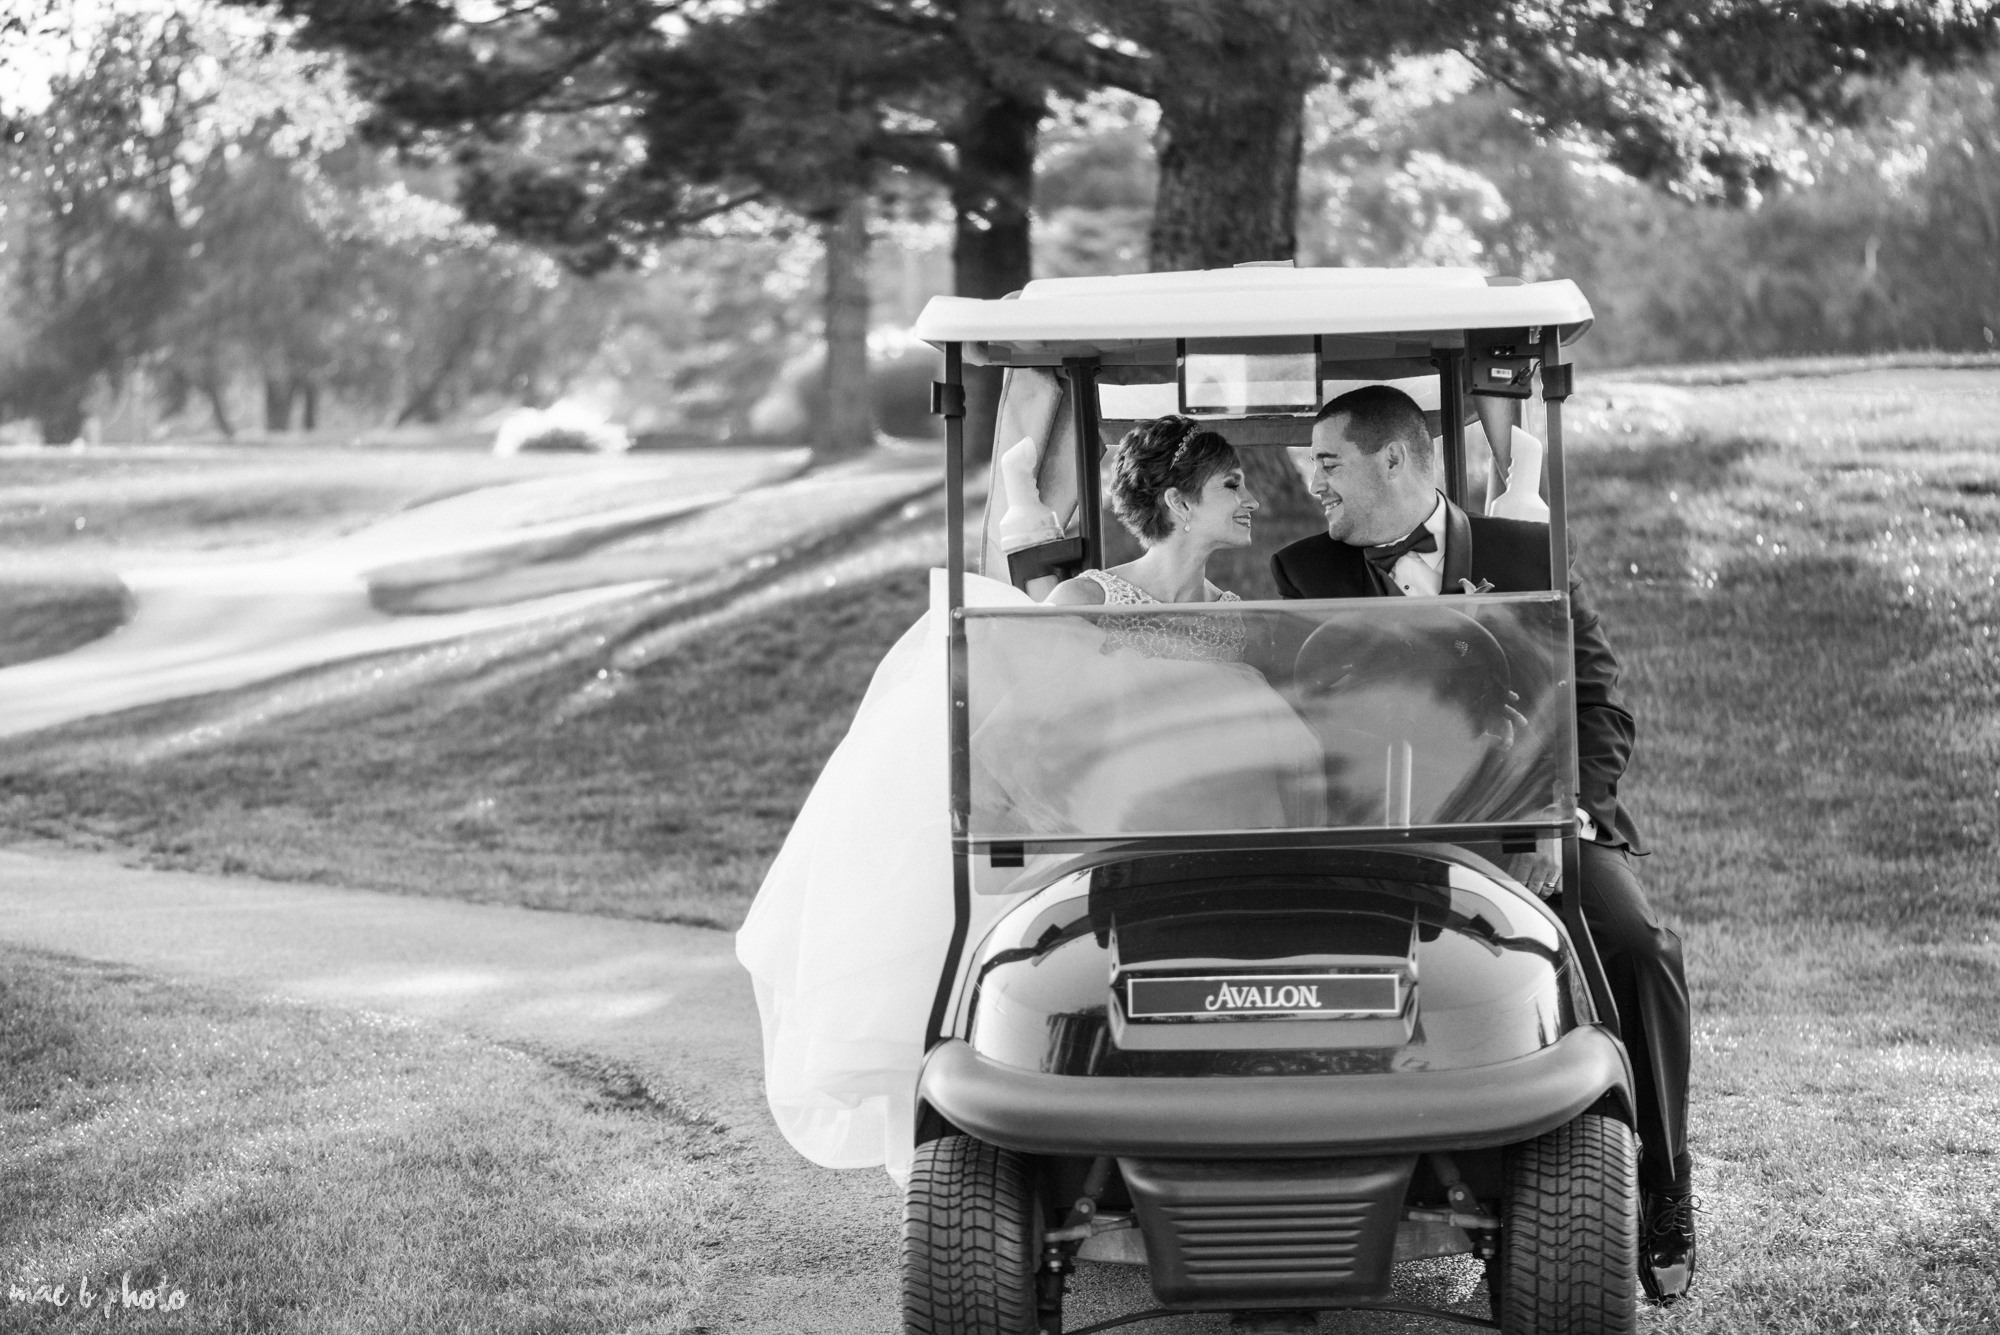 Mary Catherine & Chad's Personal Glam Country Club Wedding at The Avalon at Squaw Creek in Vienna, Ohio Photographed by Mae B Photo-1.jpg